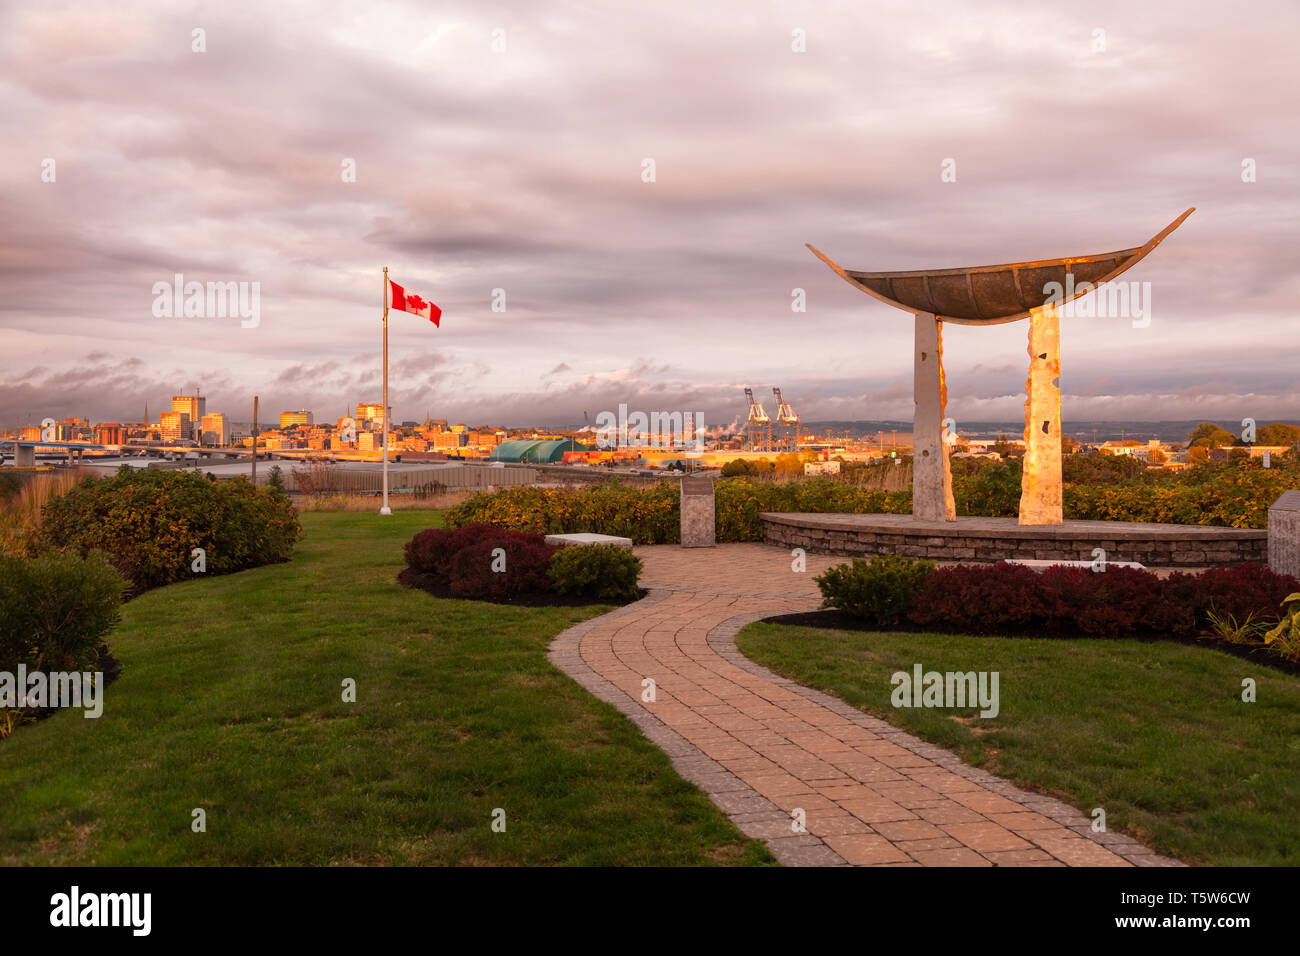 The Memory Vessel sculpture by Peter Powning with the Saint John skyline in the distance in Saint John, New Brunswick, Canada. - Stock Image